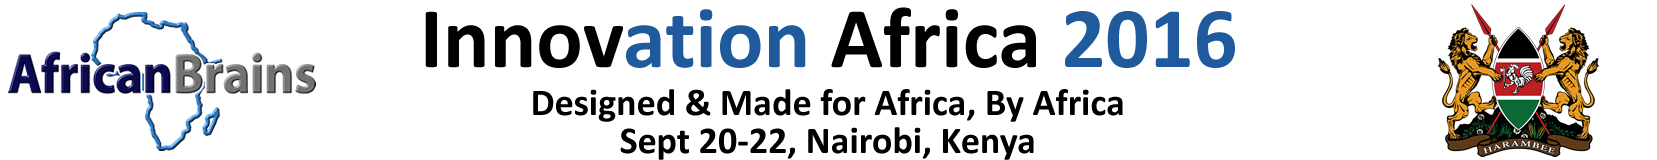 Africa's Official Ministerial Summit. Sept 20-22, Nairobi, Kenya